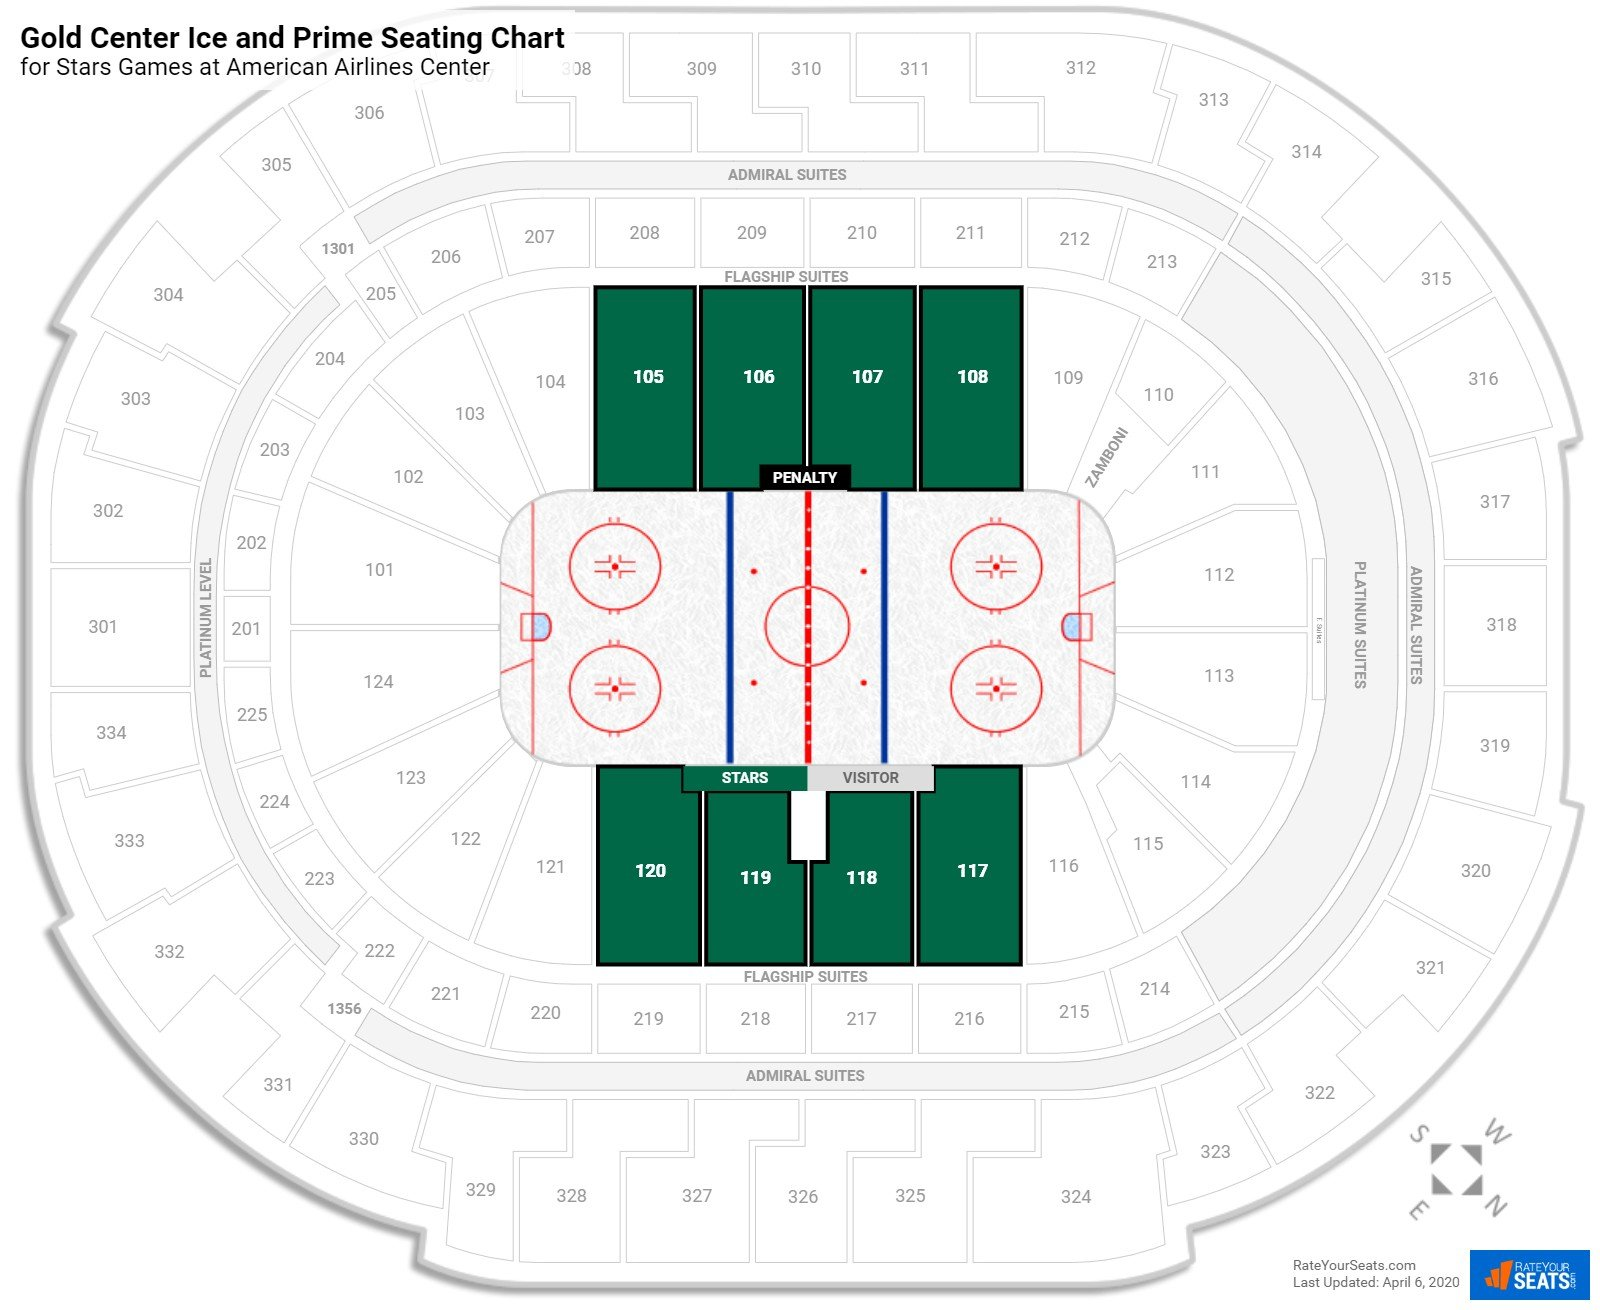 American Airlines Center Plaza Level Side seating chart